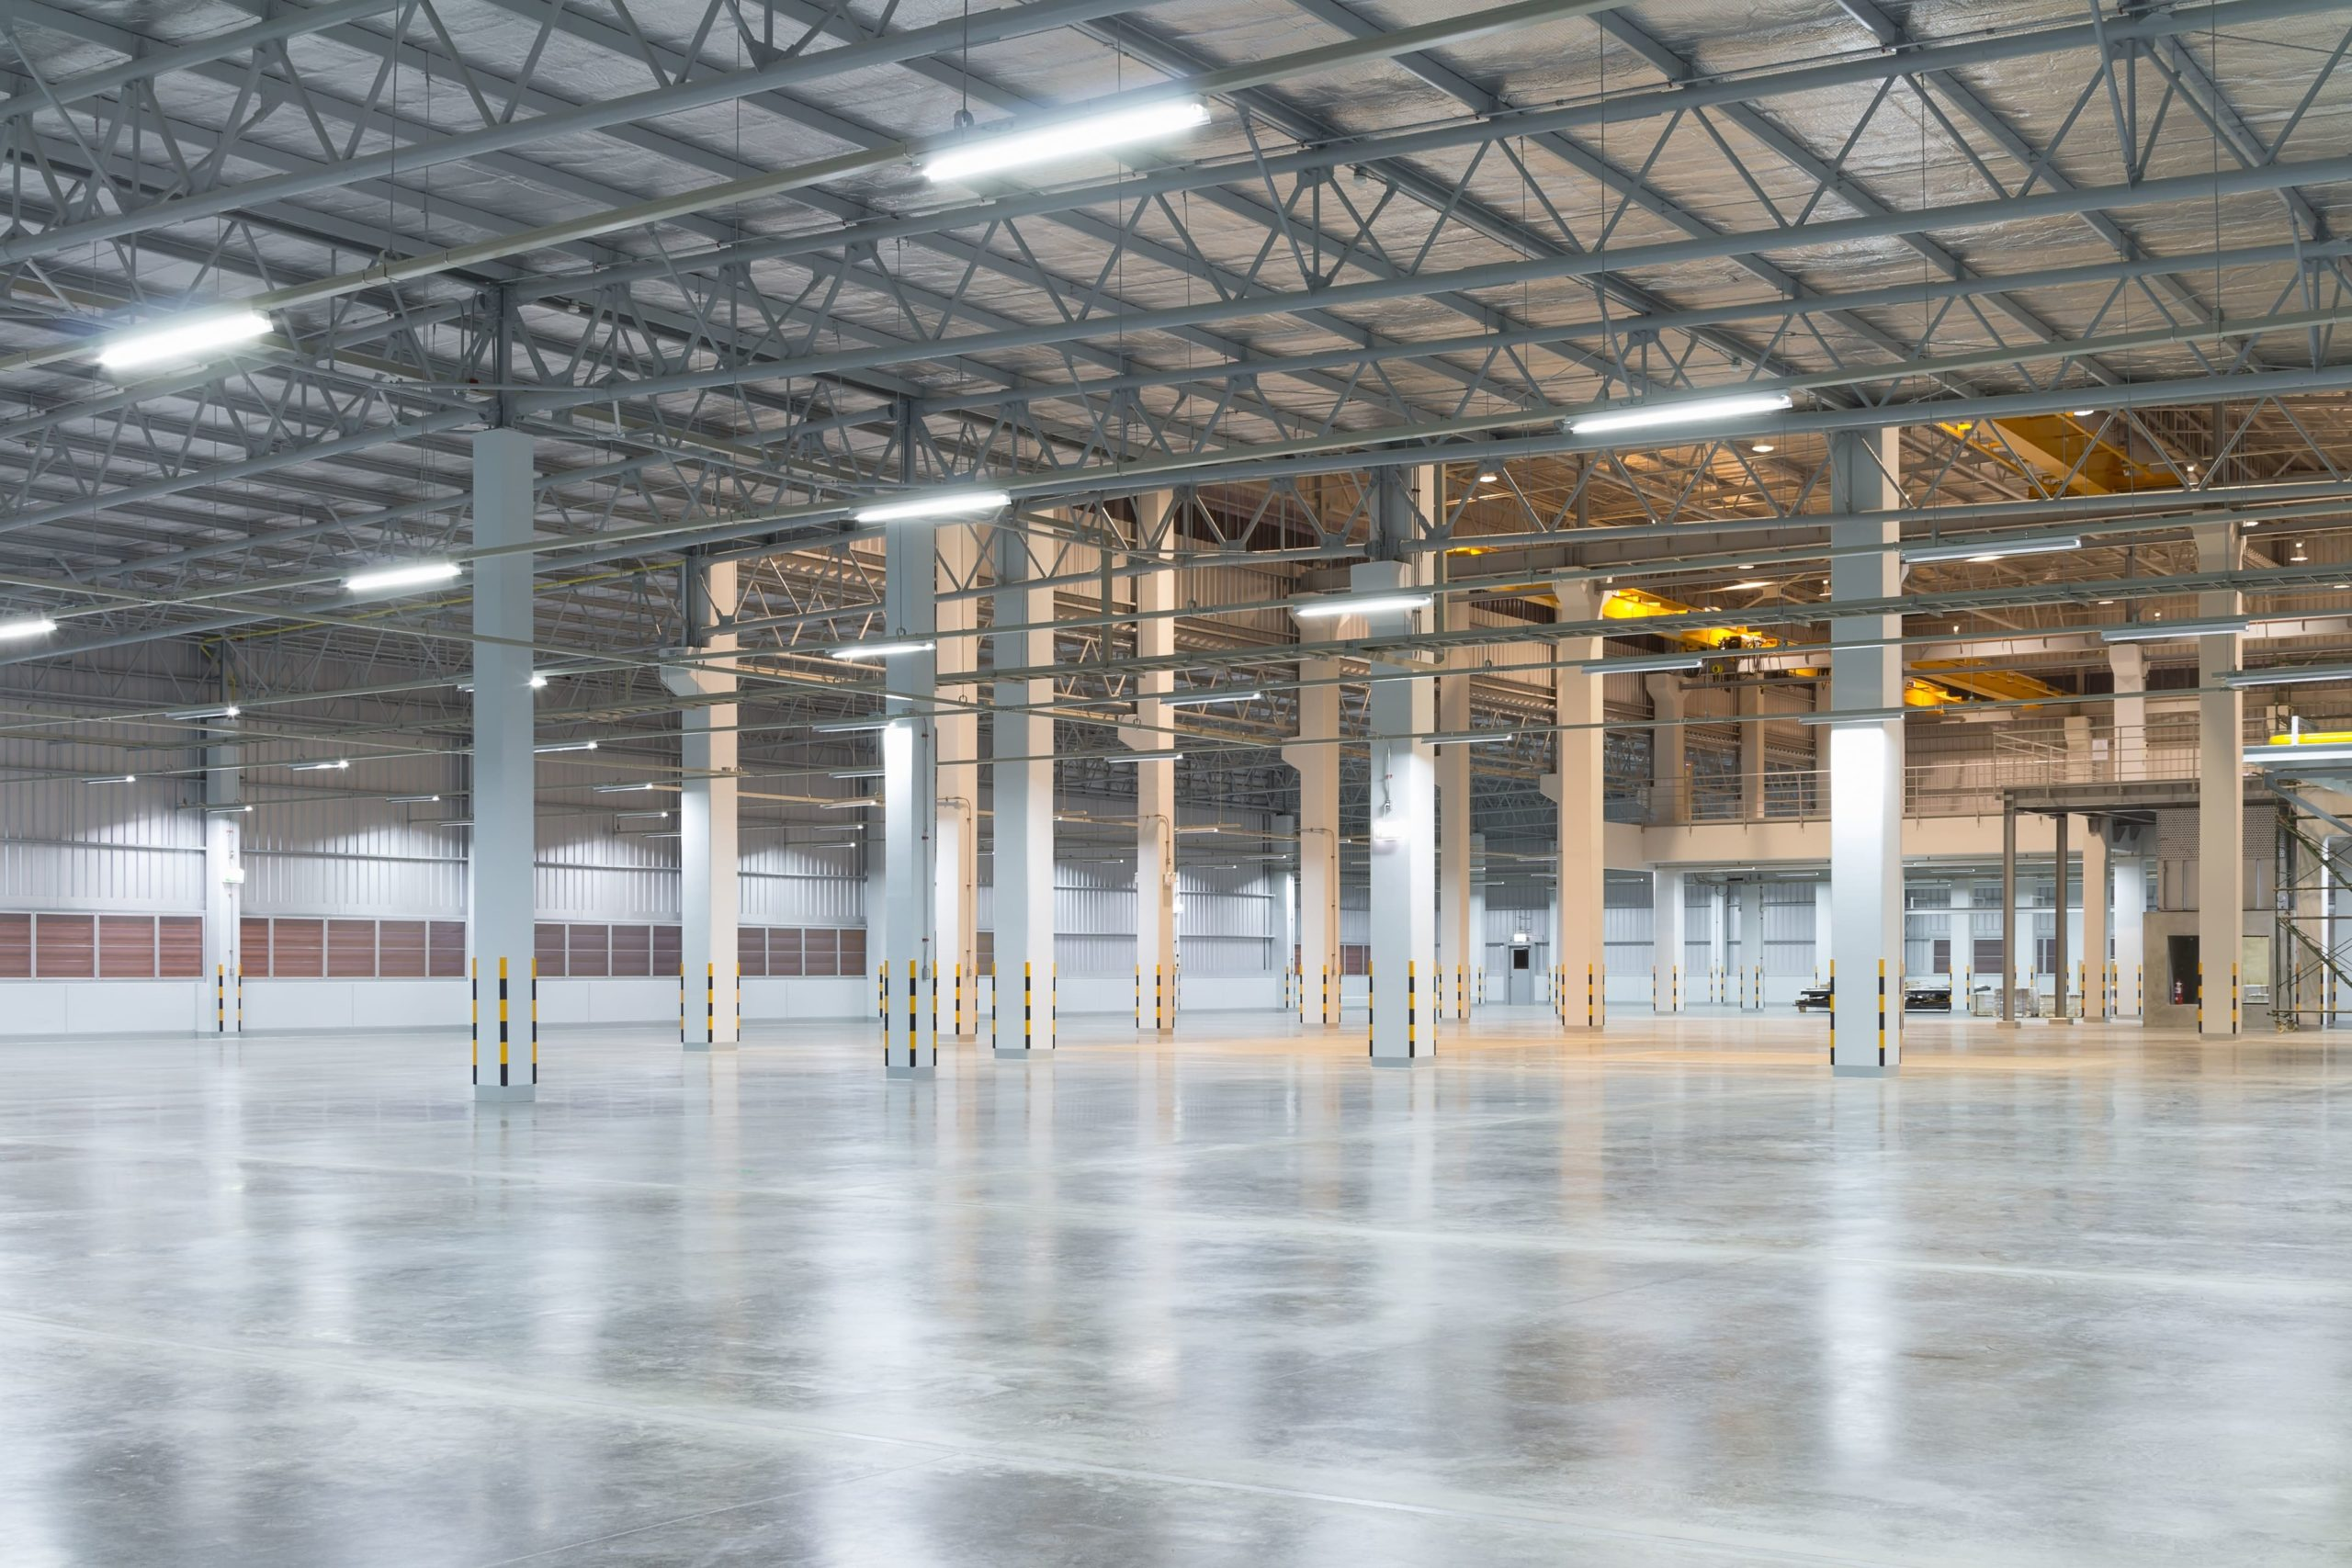 A Los Angeles warehouse with energy-efficient lighting